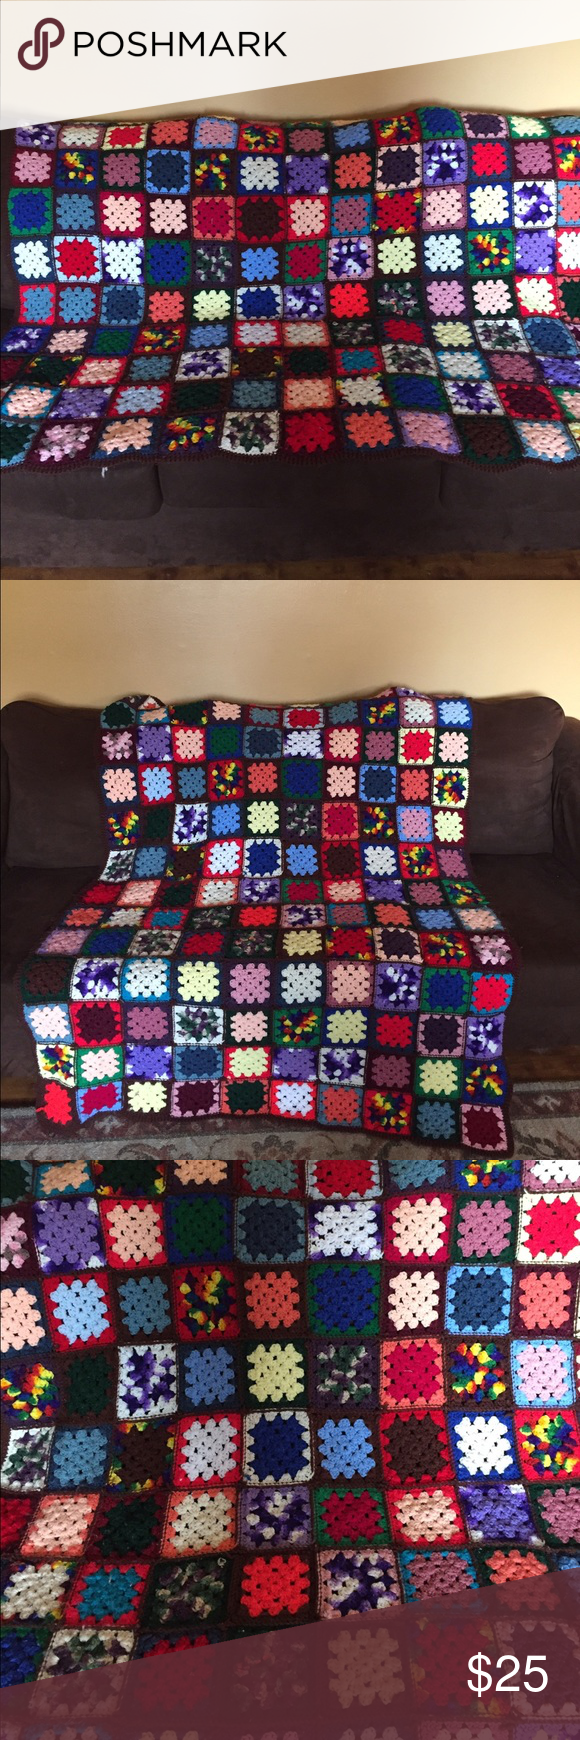 """Homemade Crocheted Afghan Crocheted Afghan. Vibrant colors. Handmade. 45""""x60"""" they perfect gift to keep that cold person in your life warm. Other"""